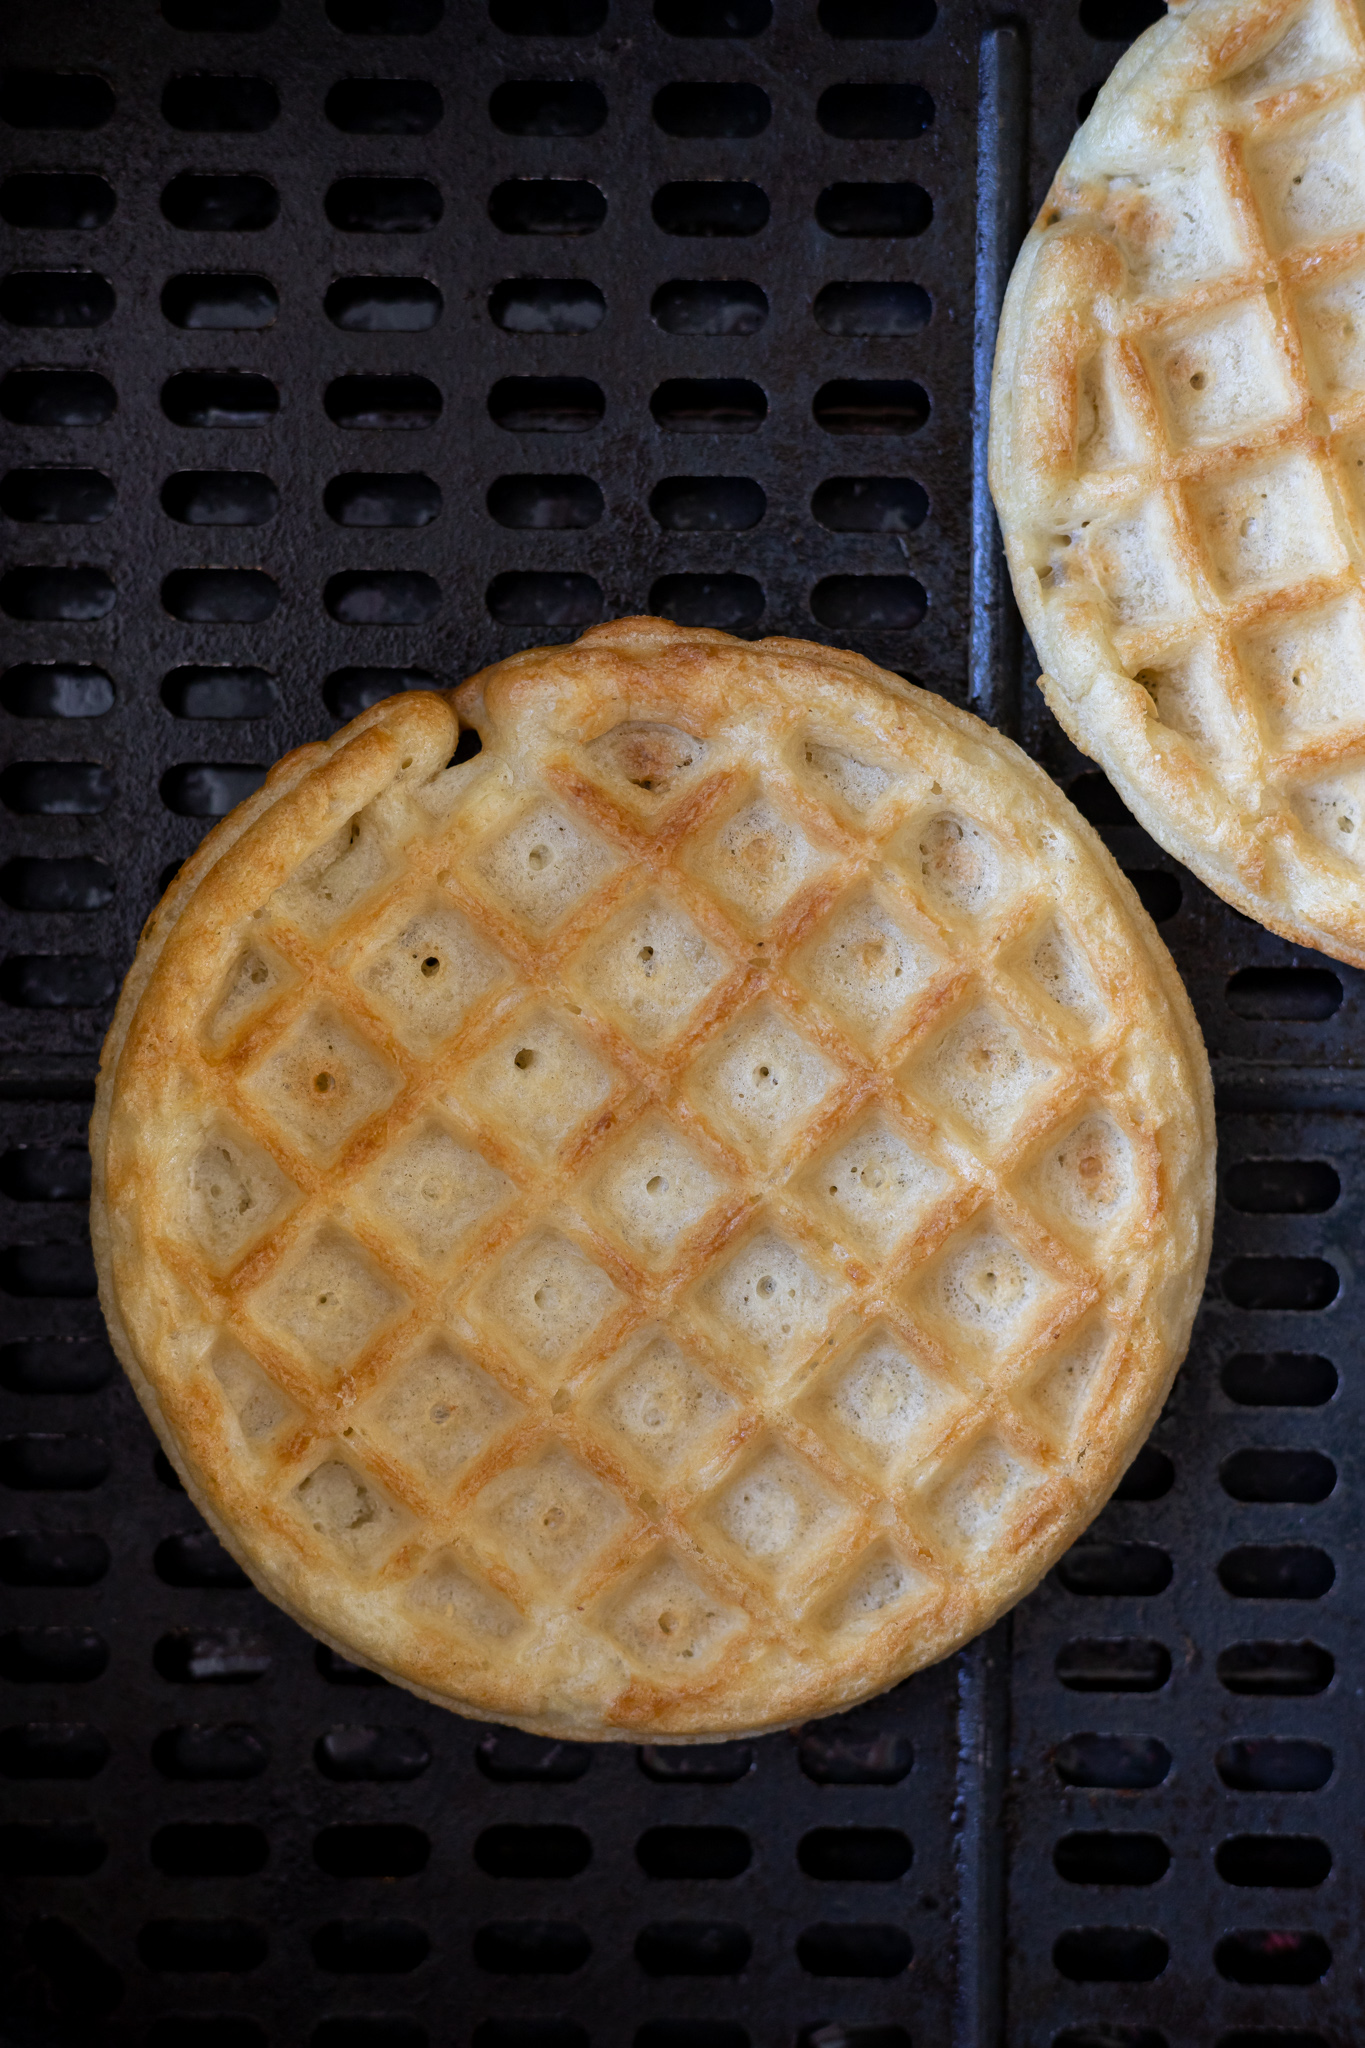 cooked waffles in air fryer basket